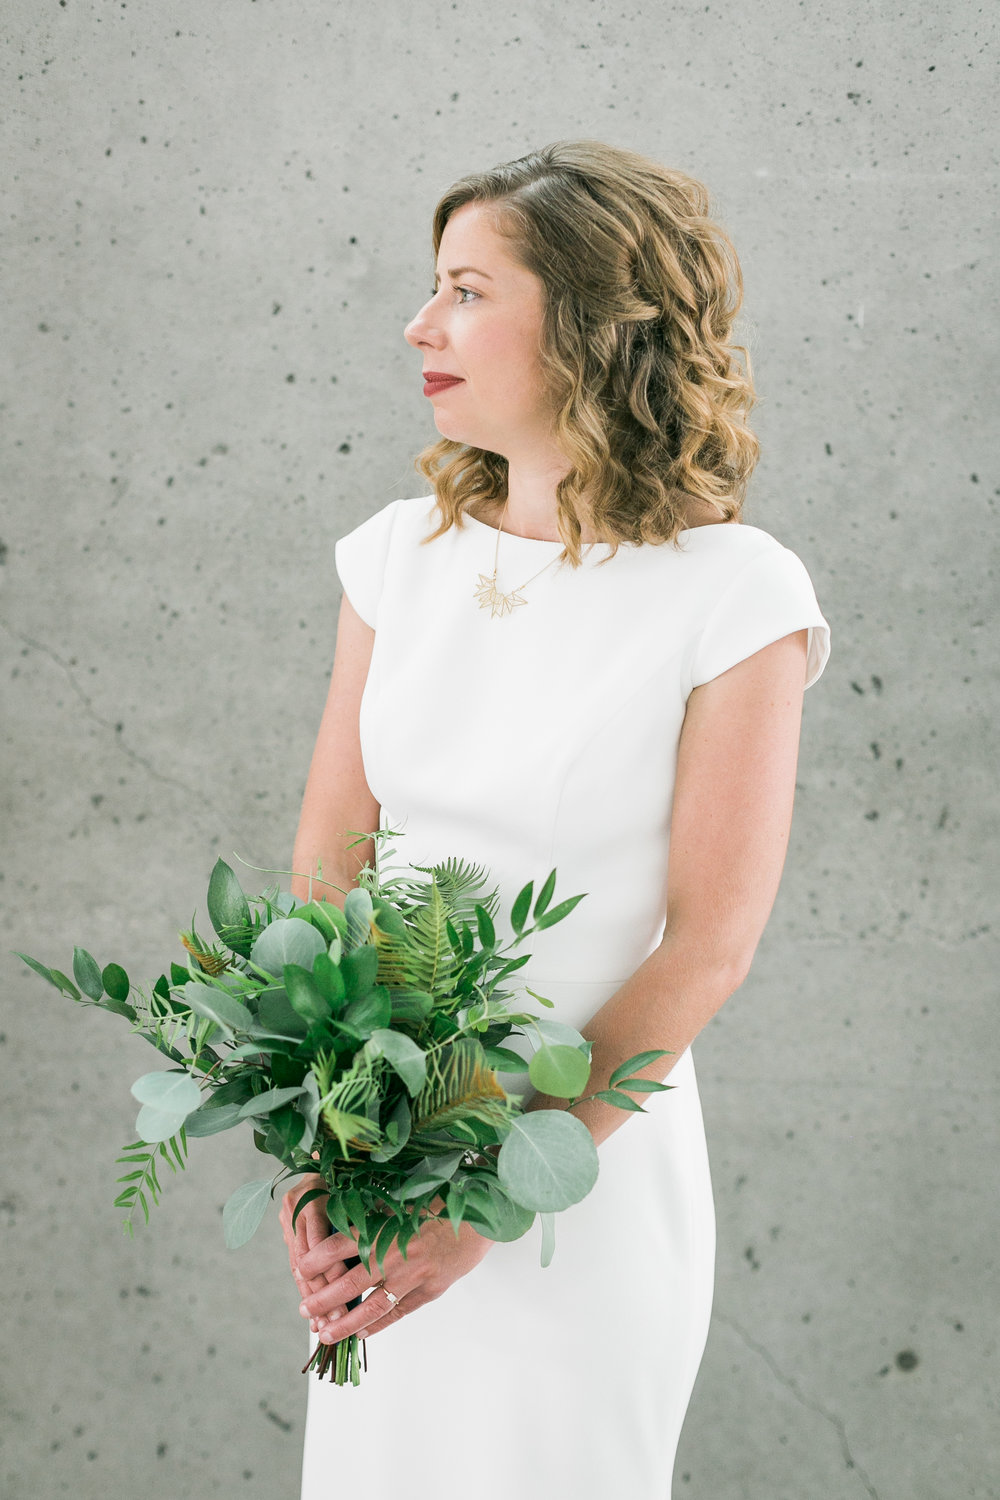 seattle-wedding-bridal-bouquet-greenery-modern-classic-white